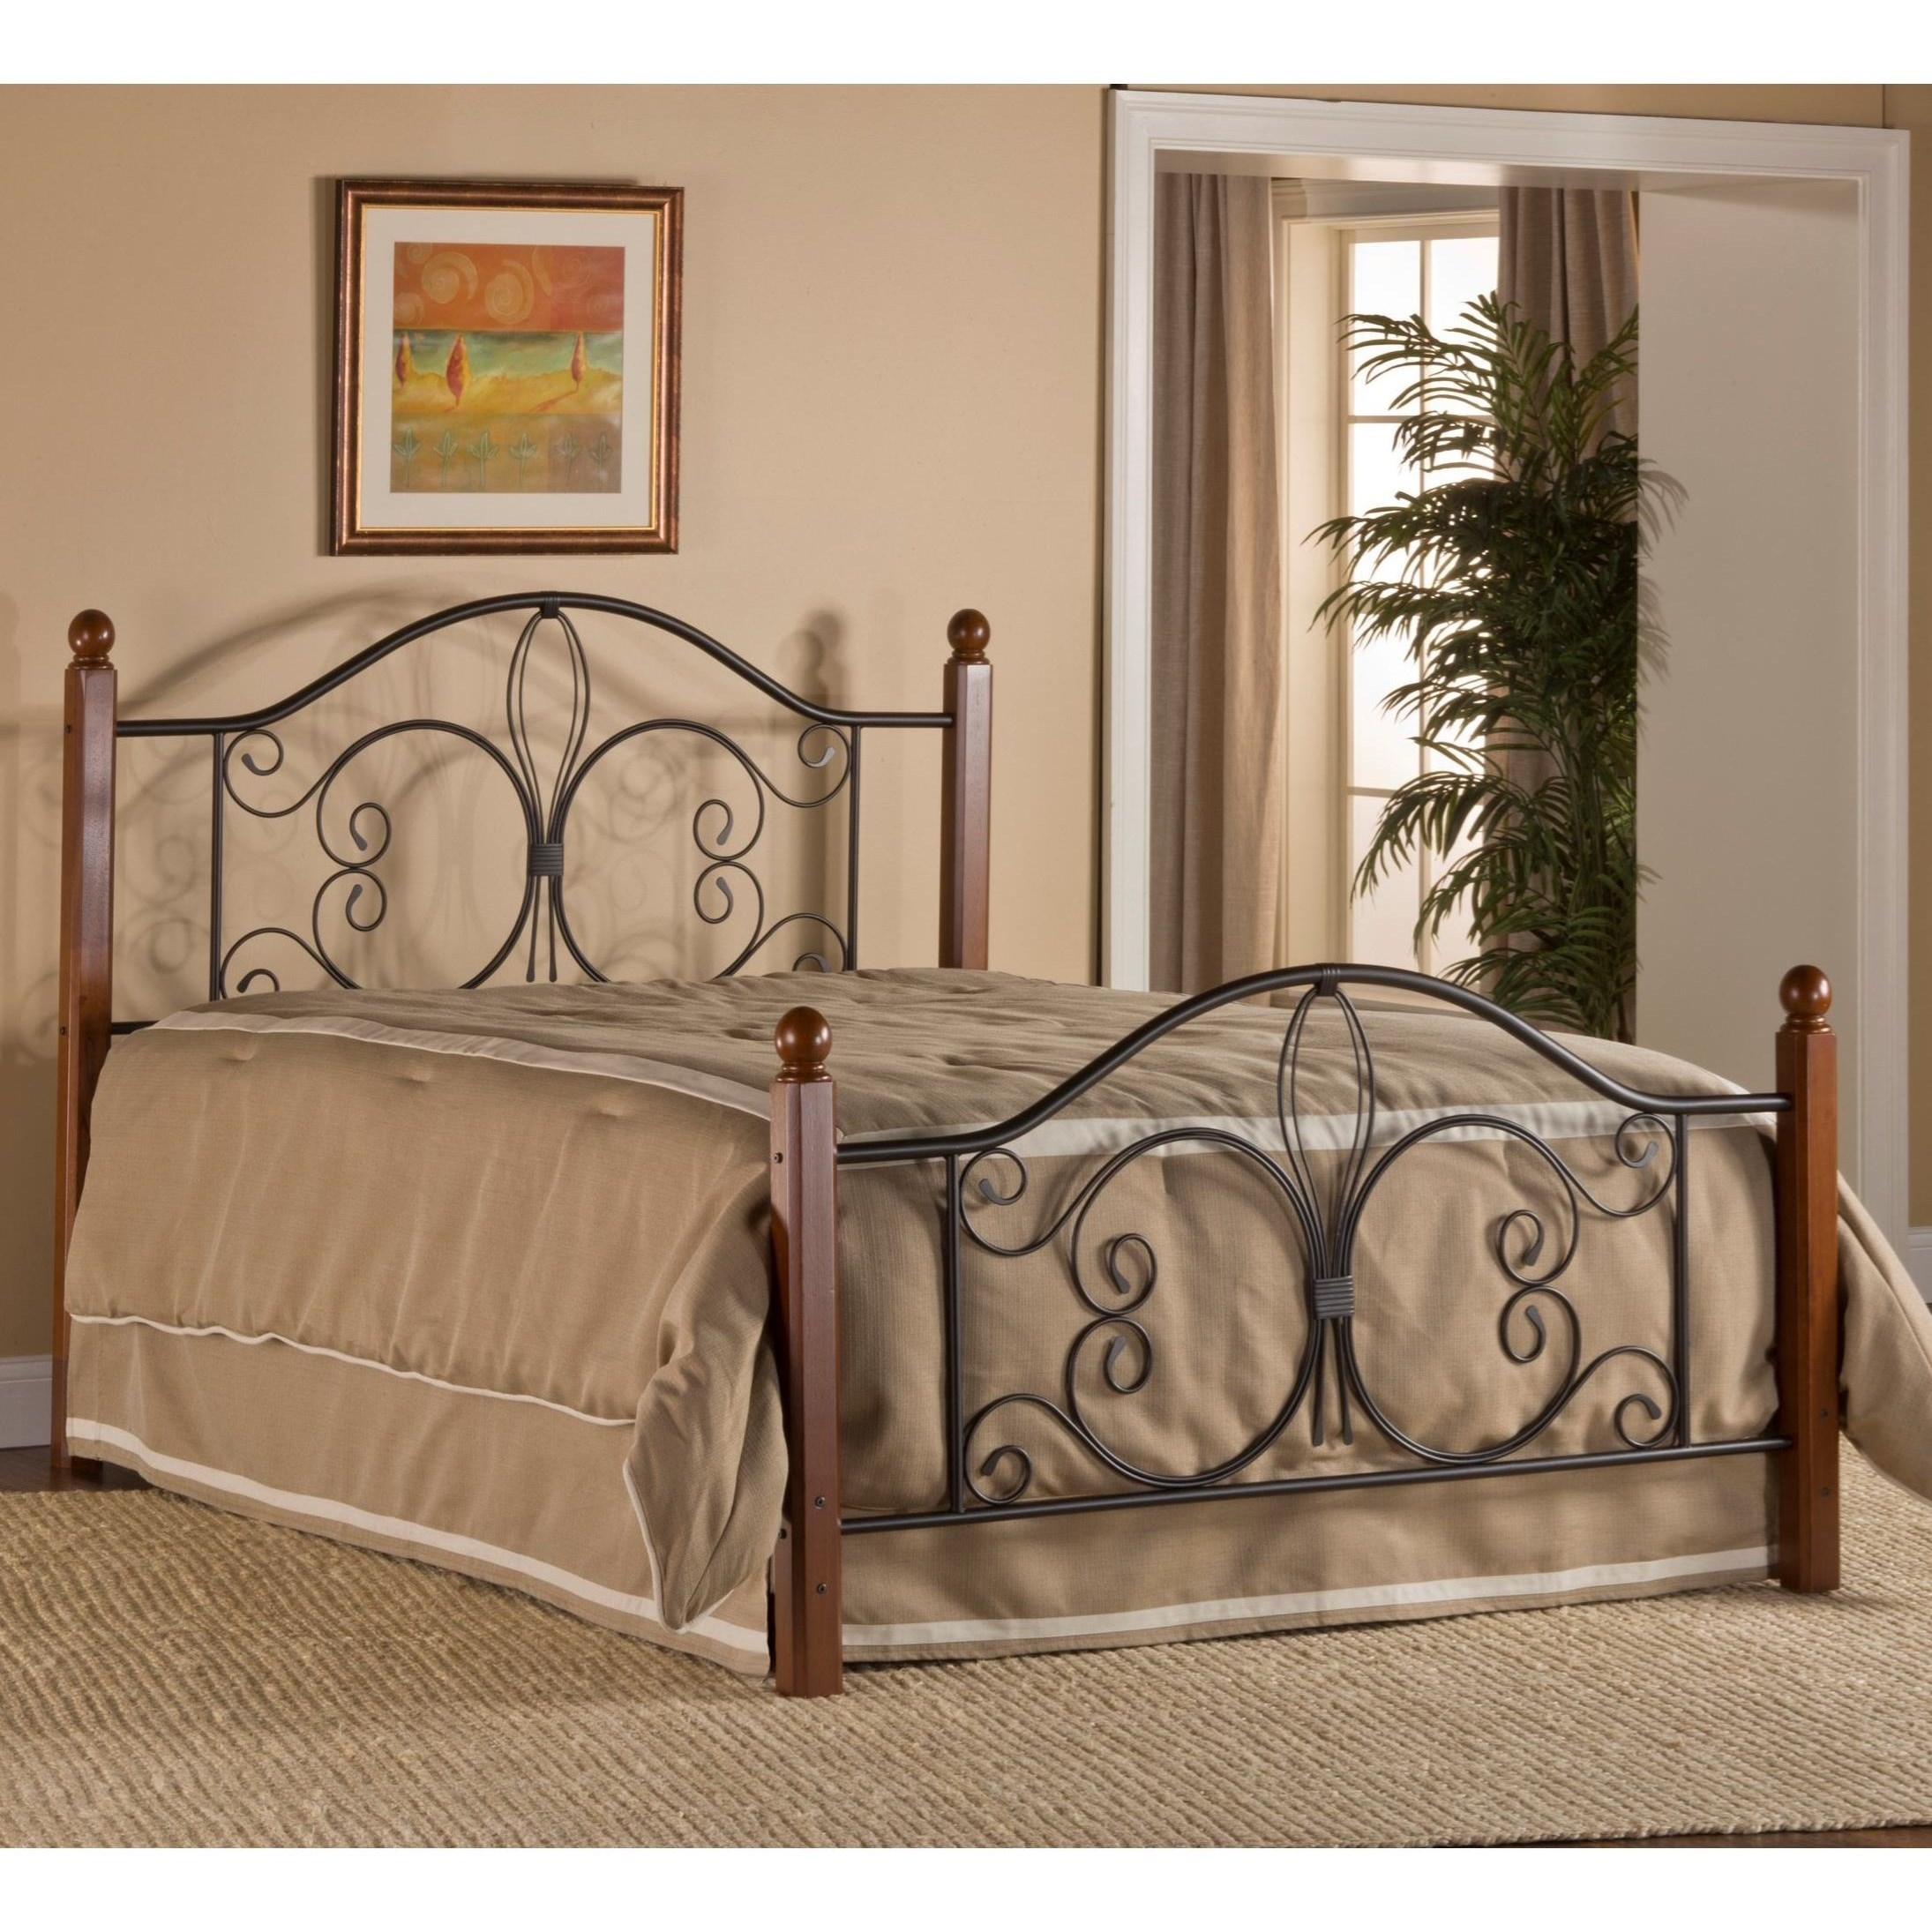 Hillsdale Metal Beds Twin Milwaukee Wood Post Bed - Item Number: 1422BTWRP